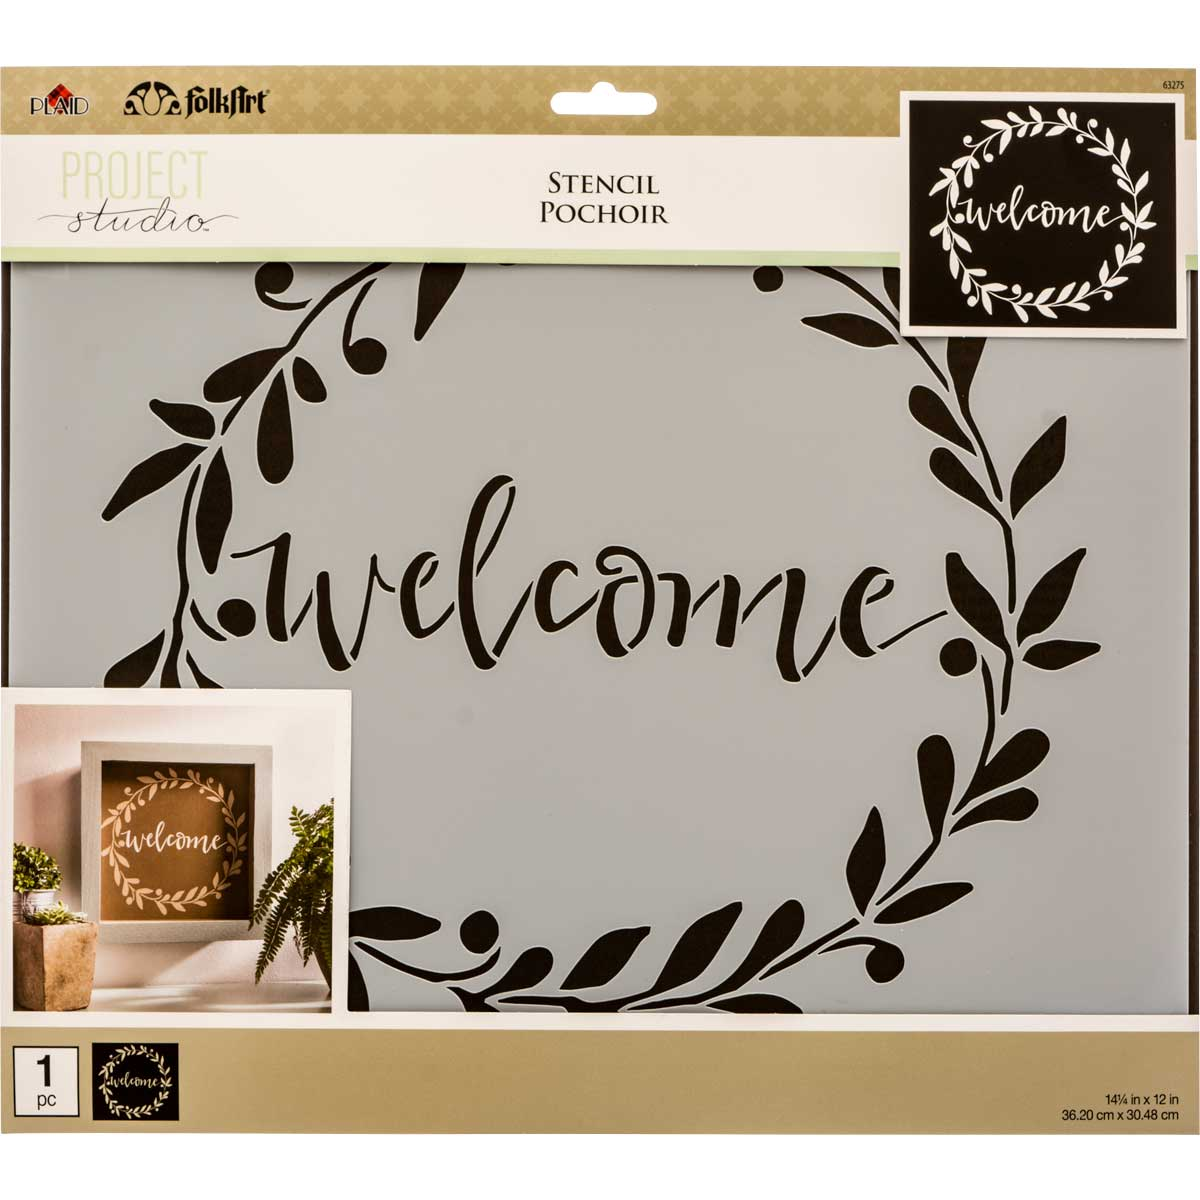 FolkArt ® Painting Stencils - Sign Making - Project Studio™ Welcome Wreath - 63275